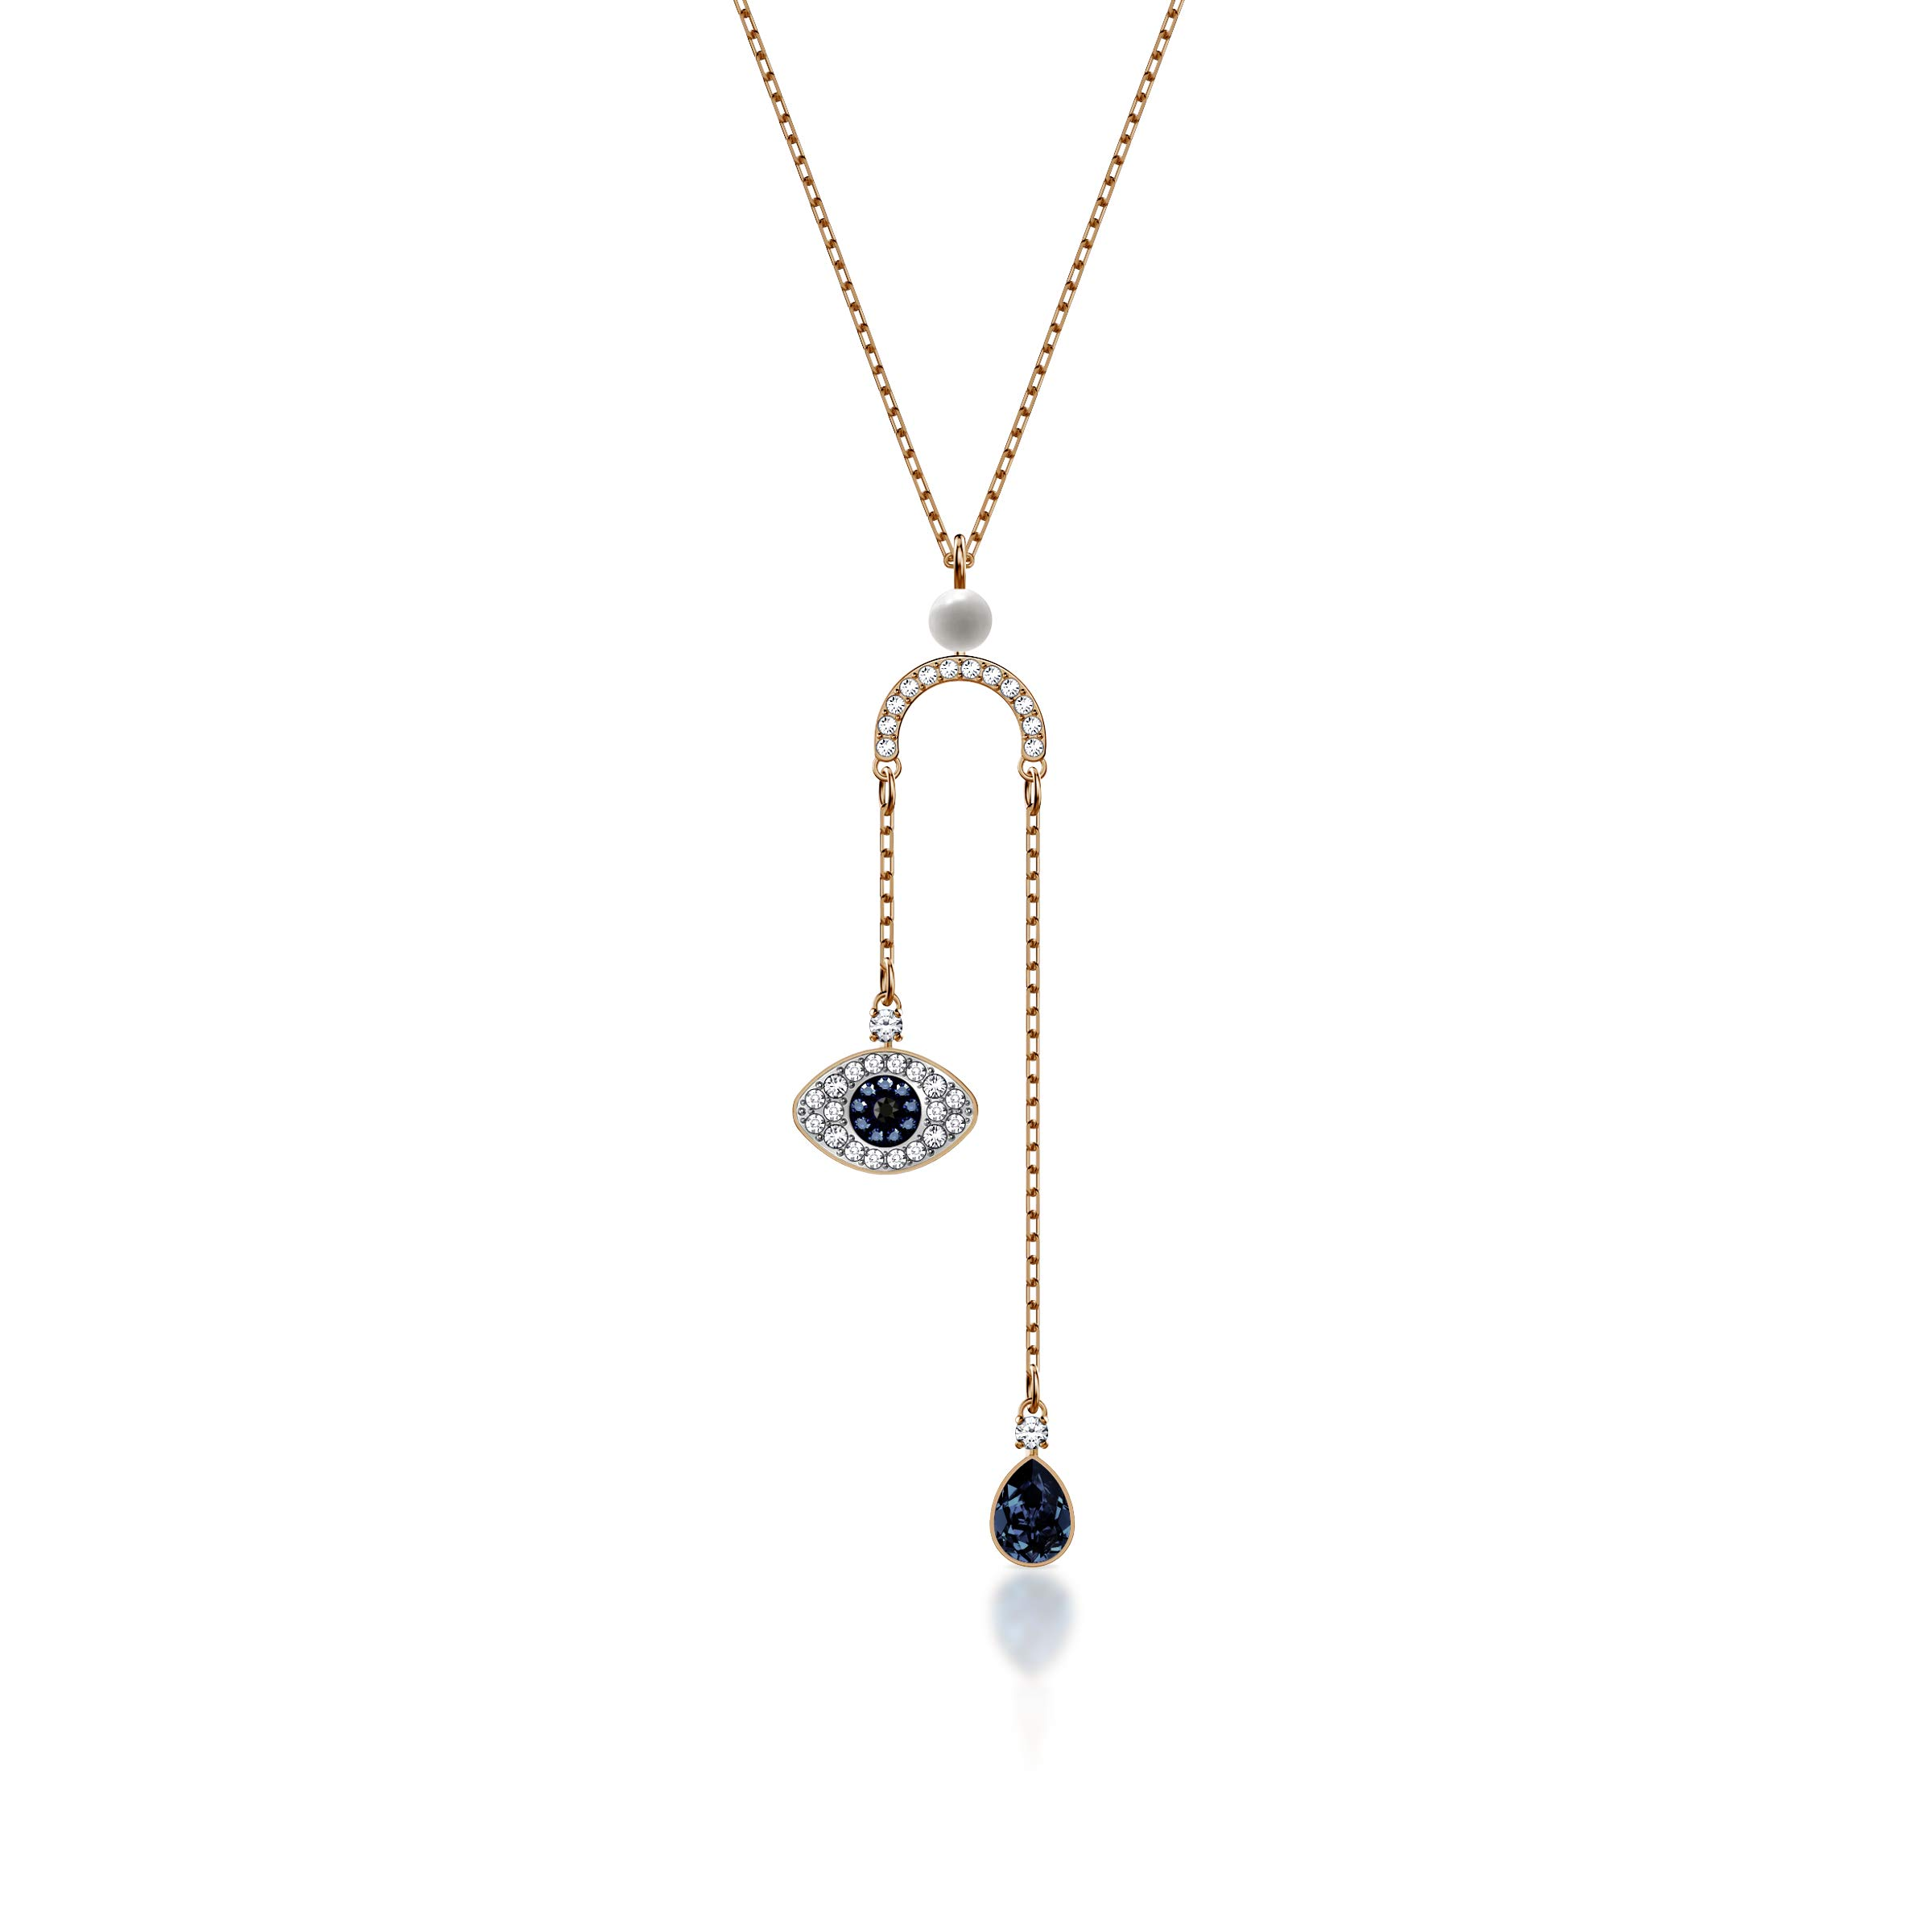 Swarovski Crystal Duo Evil Eye Rose Gold-Plated Y Necklace #5425861